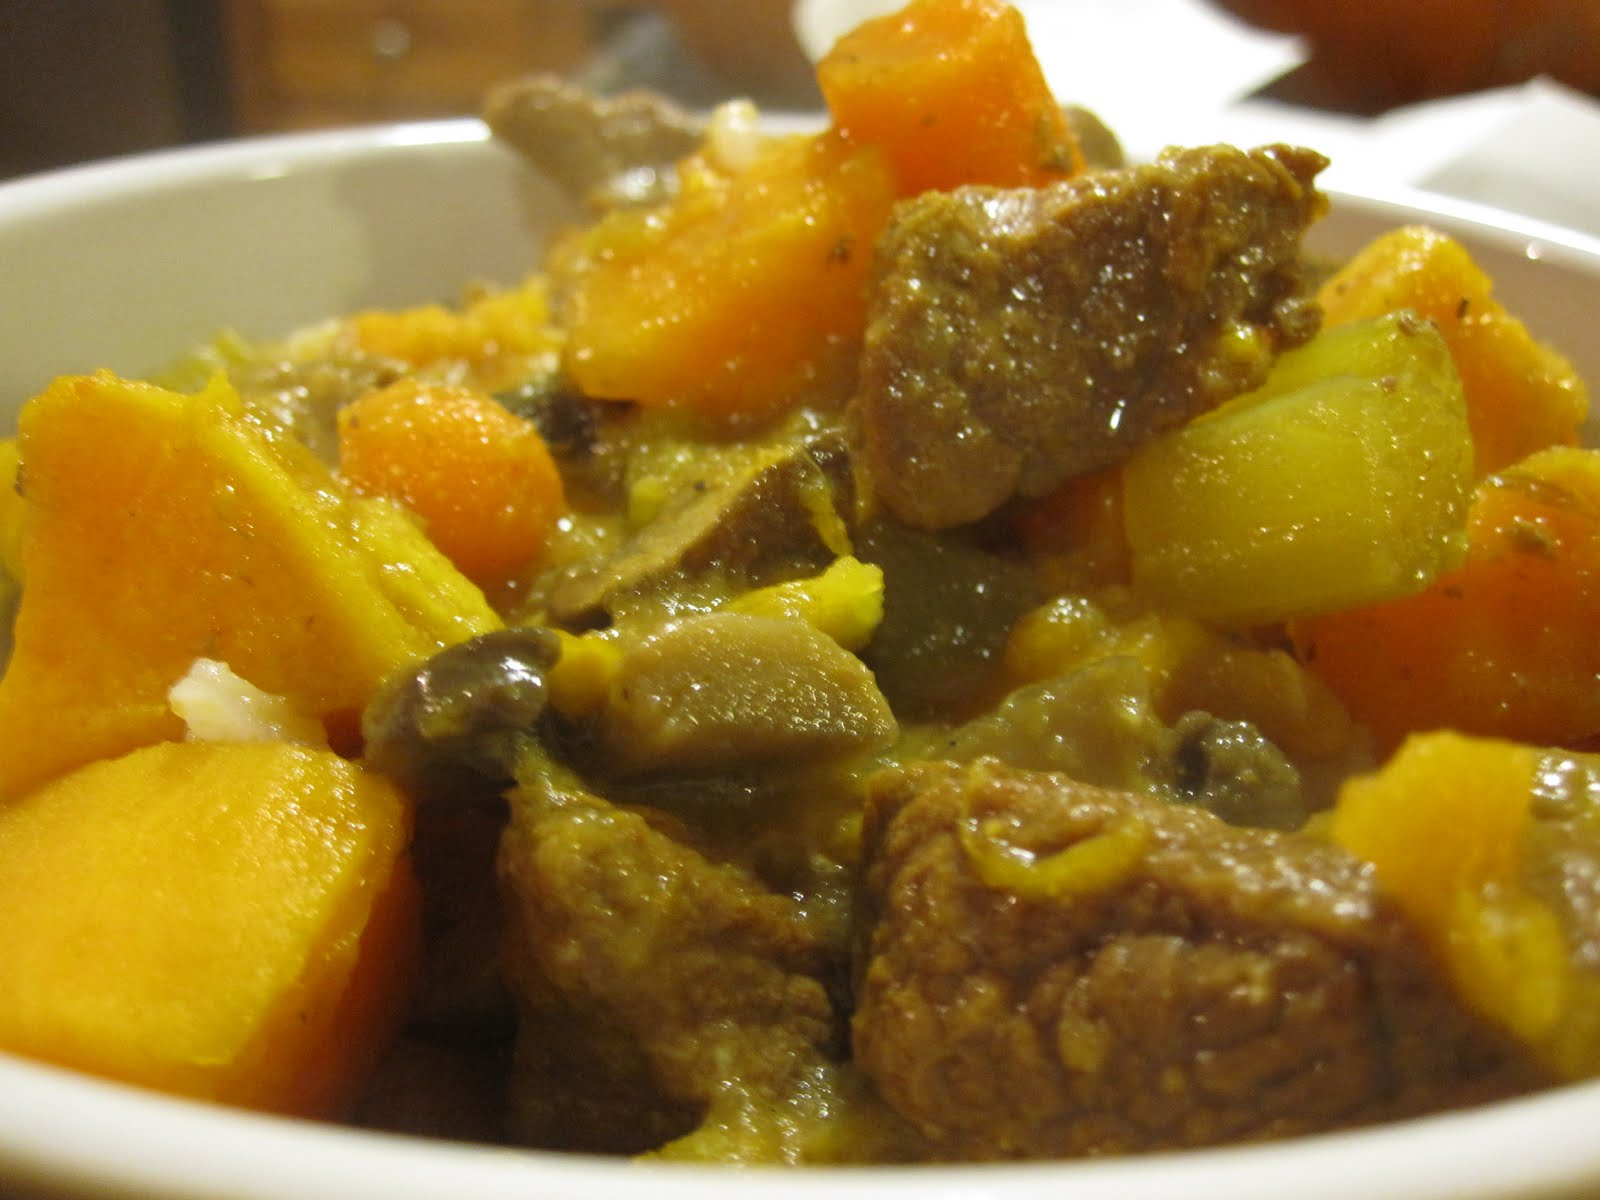 Bowls of Soup: Curried Beef Stew